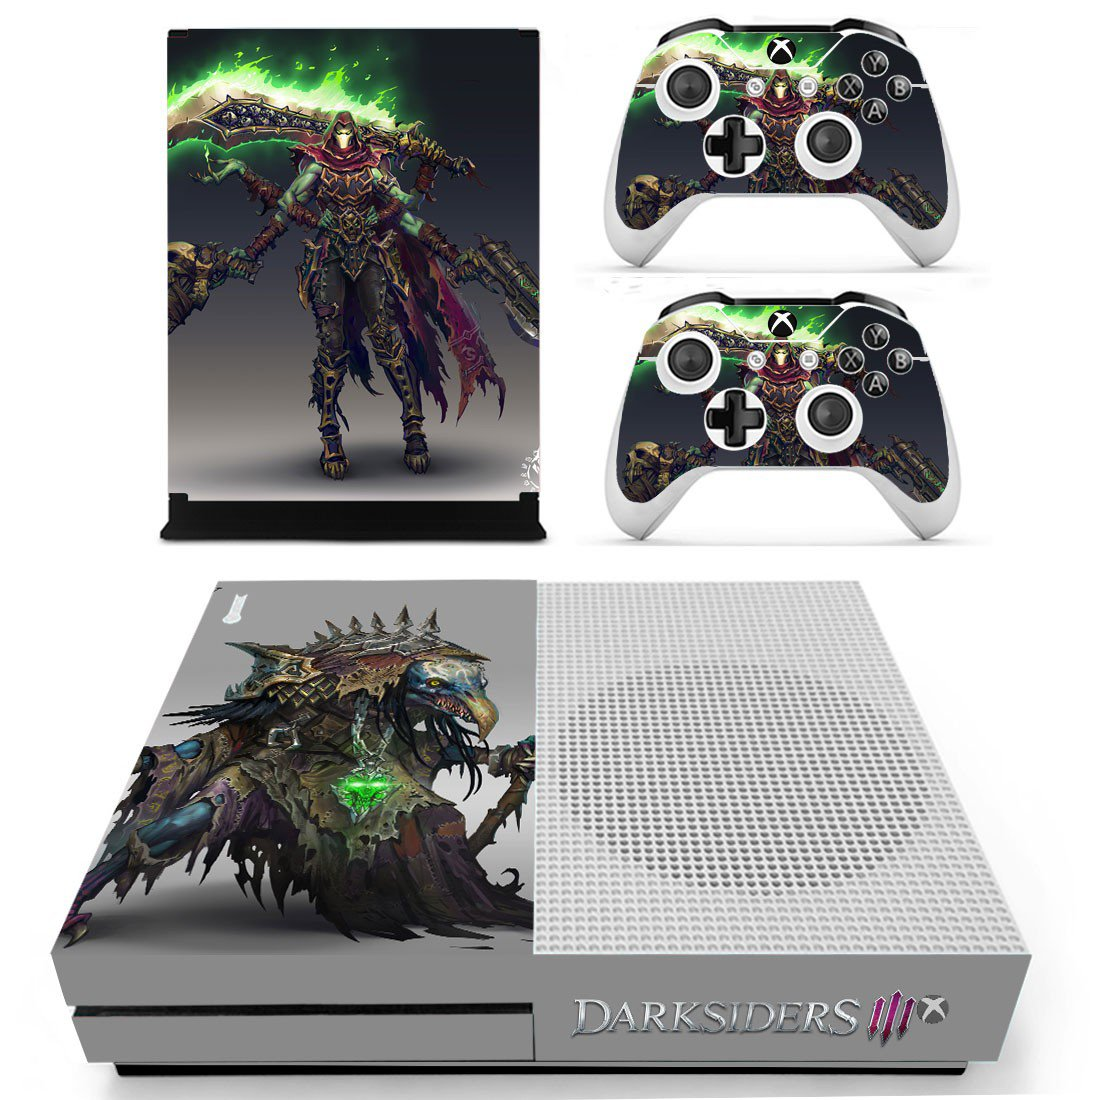 Darksiders 3 decal skin sticker for Xbox One S console and controllers